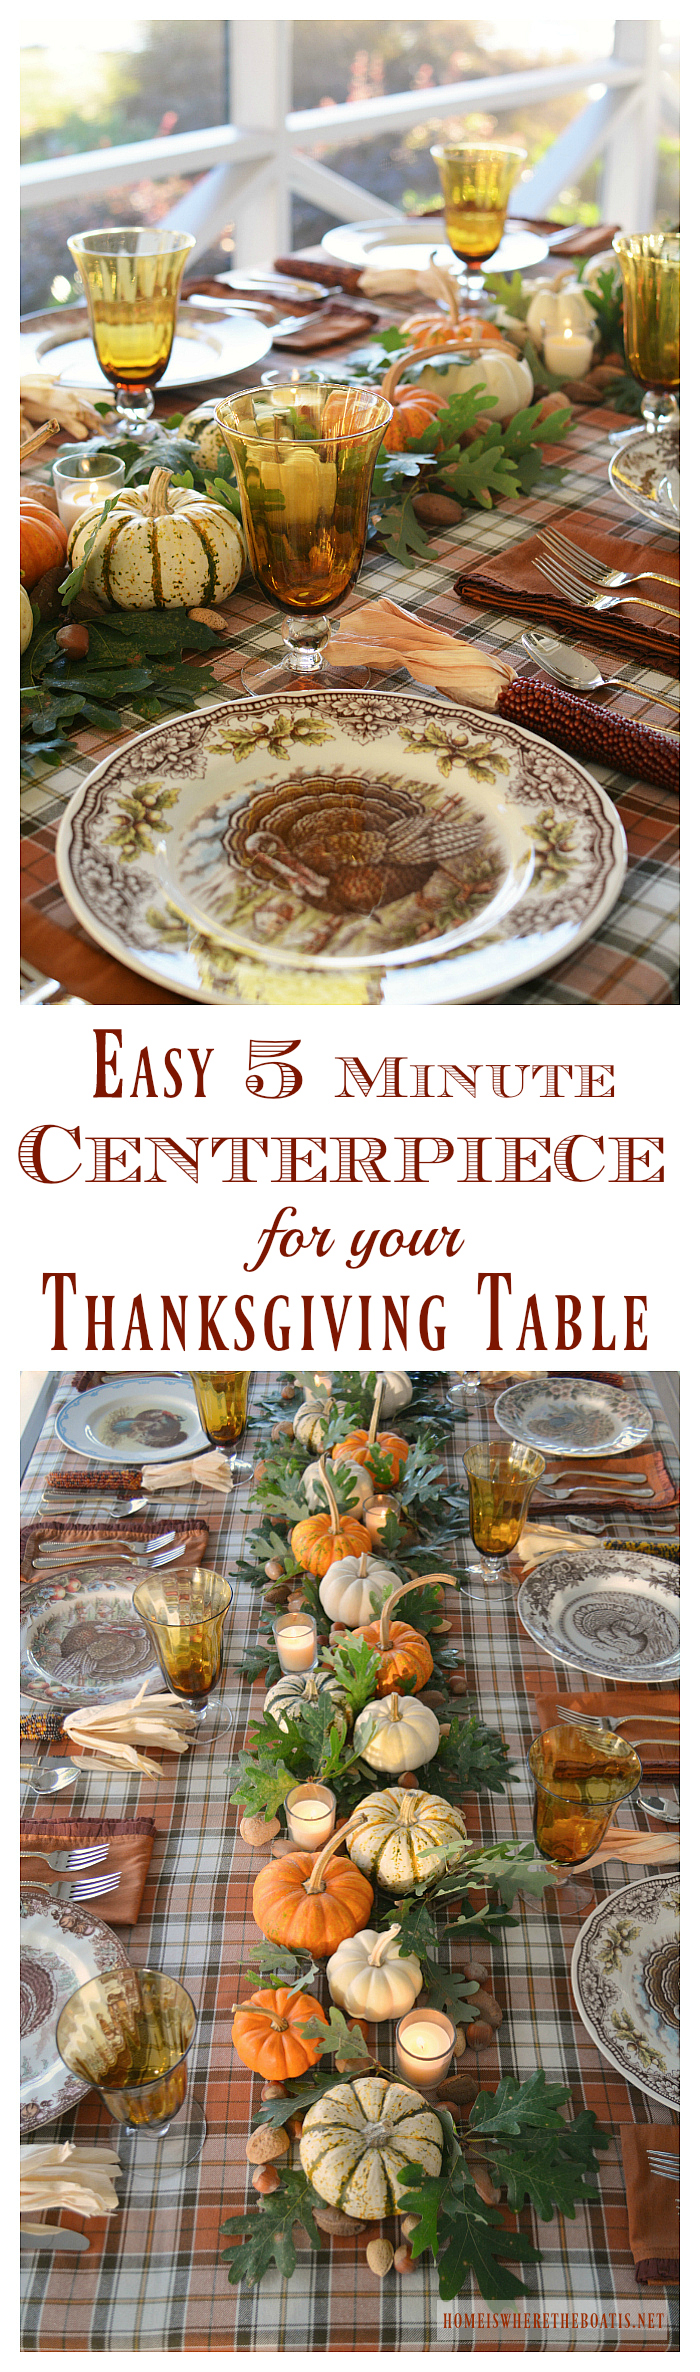 easy-5-minute-centerpiece-for-thanksgiving